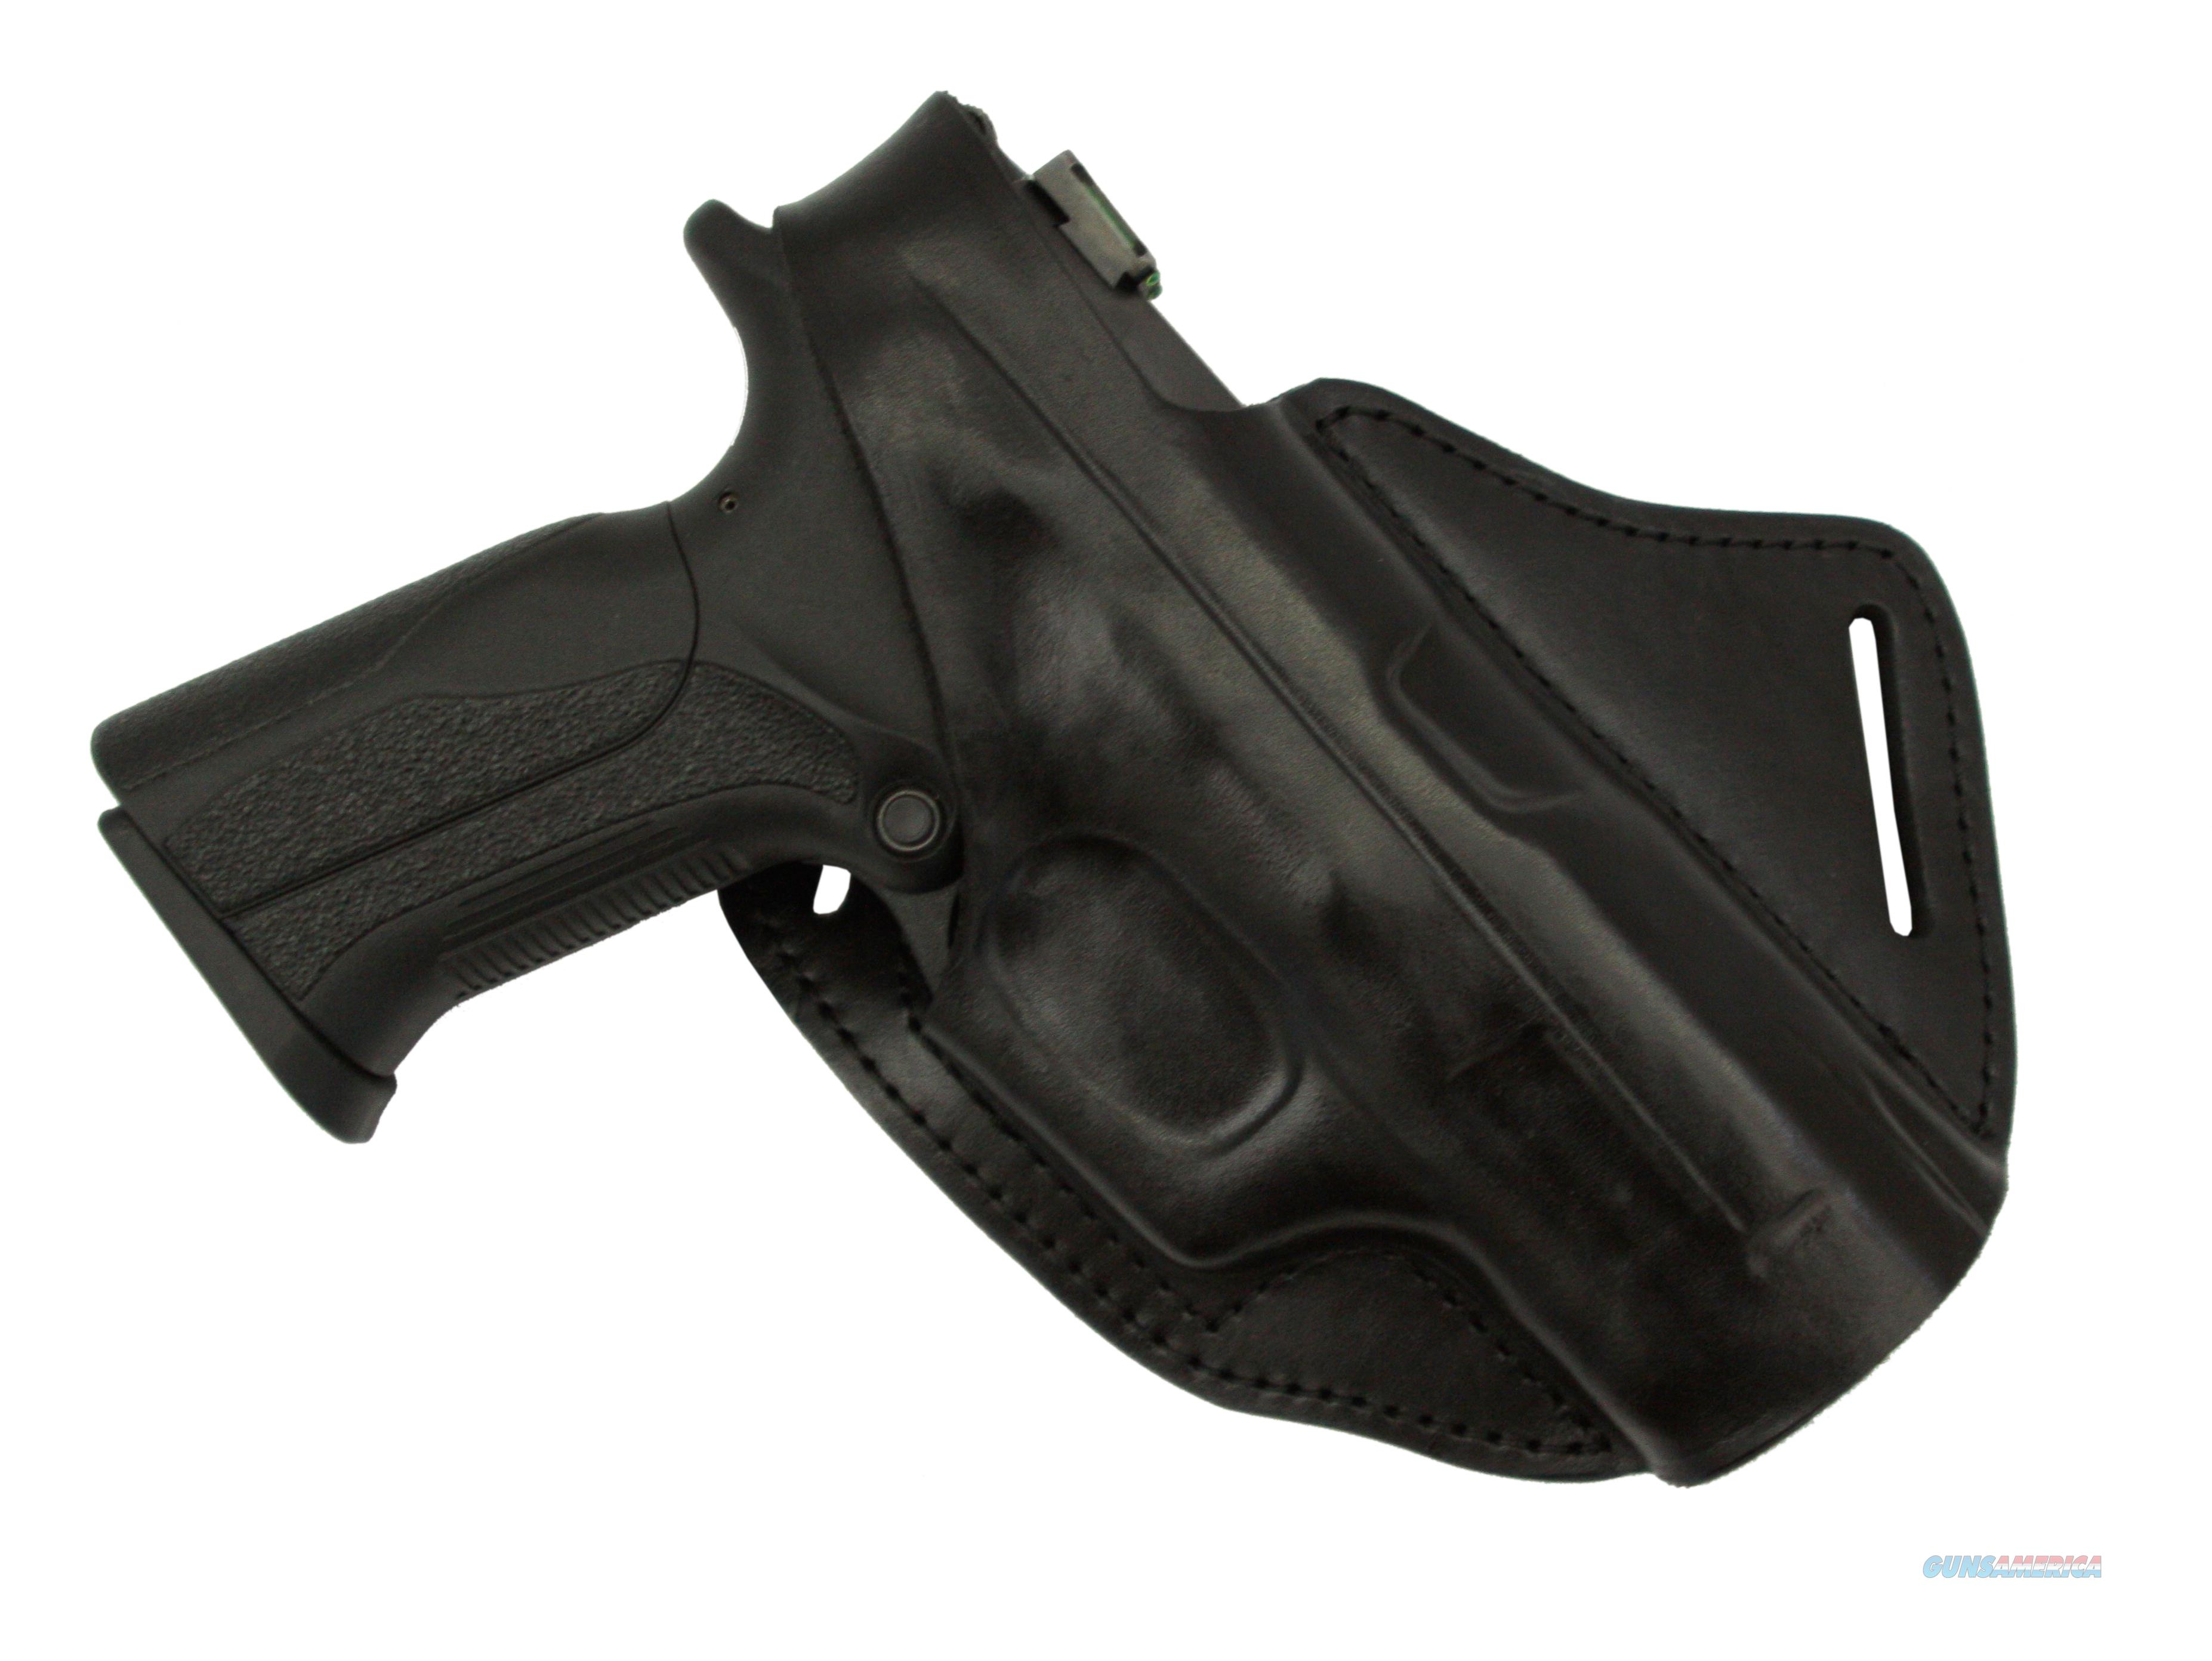 Cross Draw Leather Belt Holster  Heckler & Koch USP 9mm  Non-Guns > Holsters and Gunleather > Concealed Carry